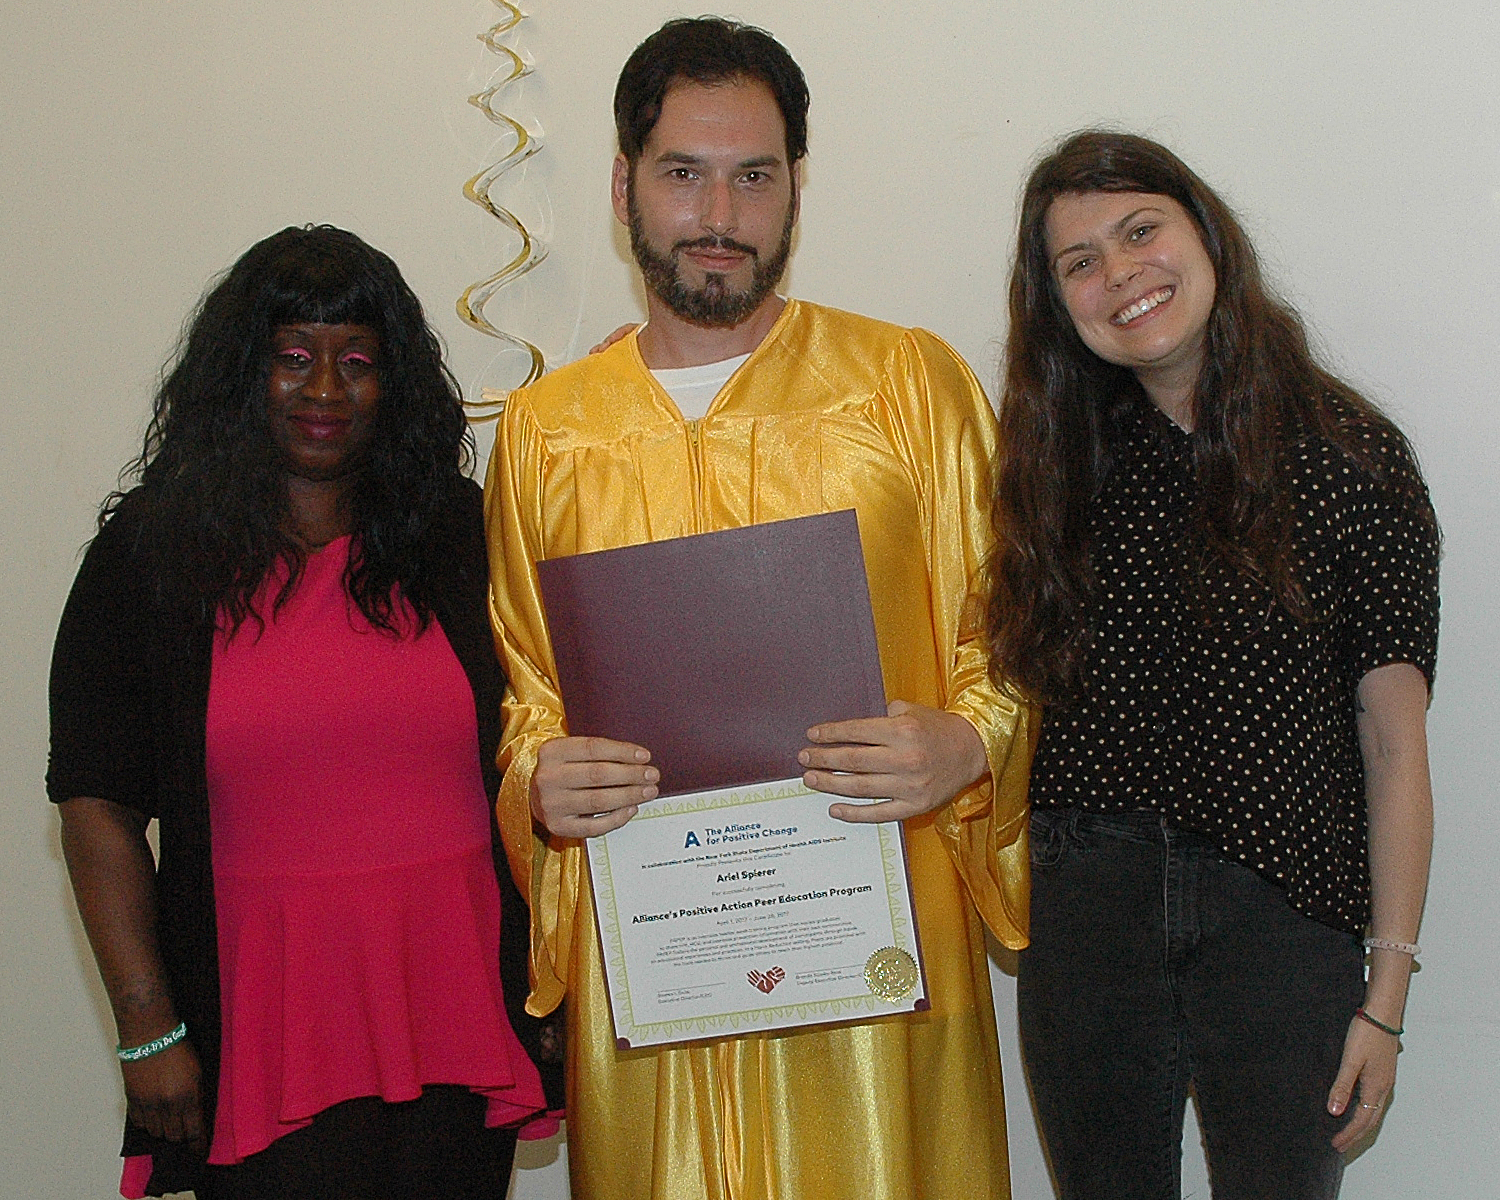 One of the graduates receiving his certificate